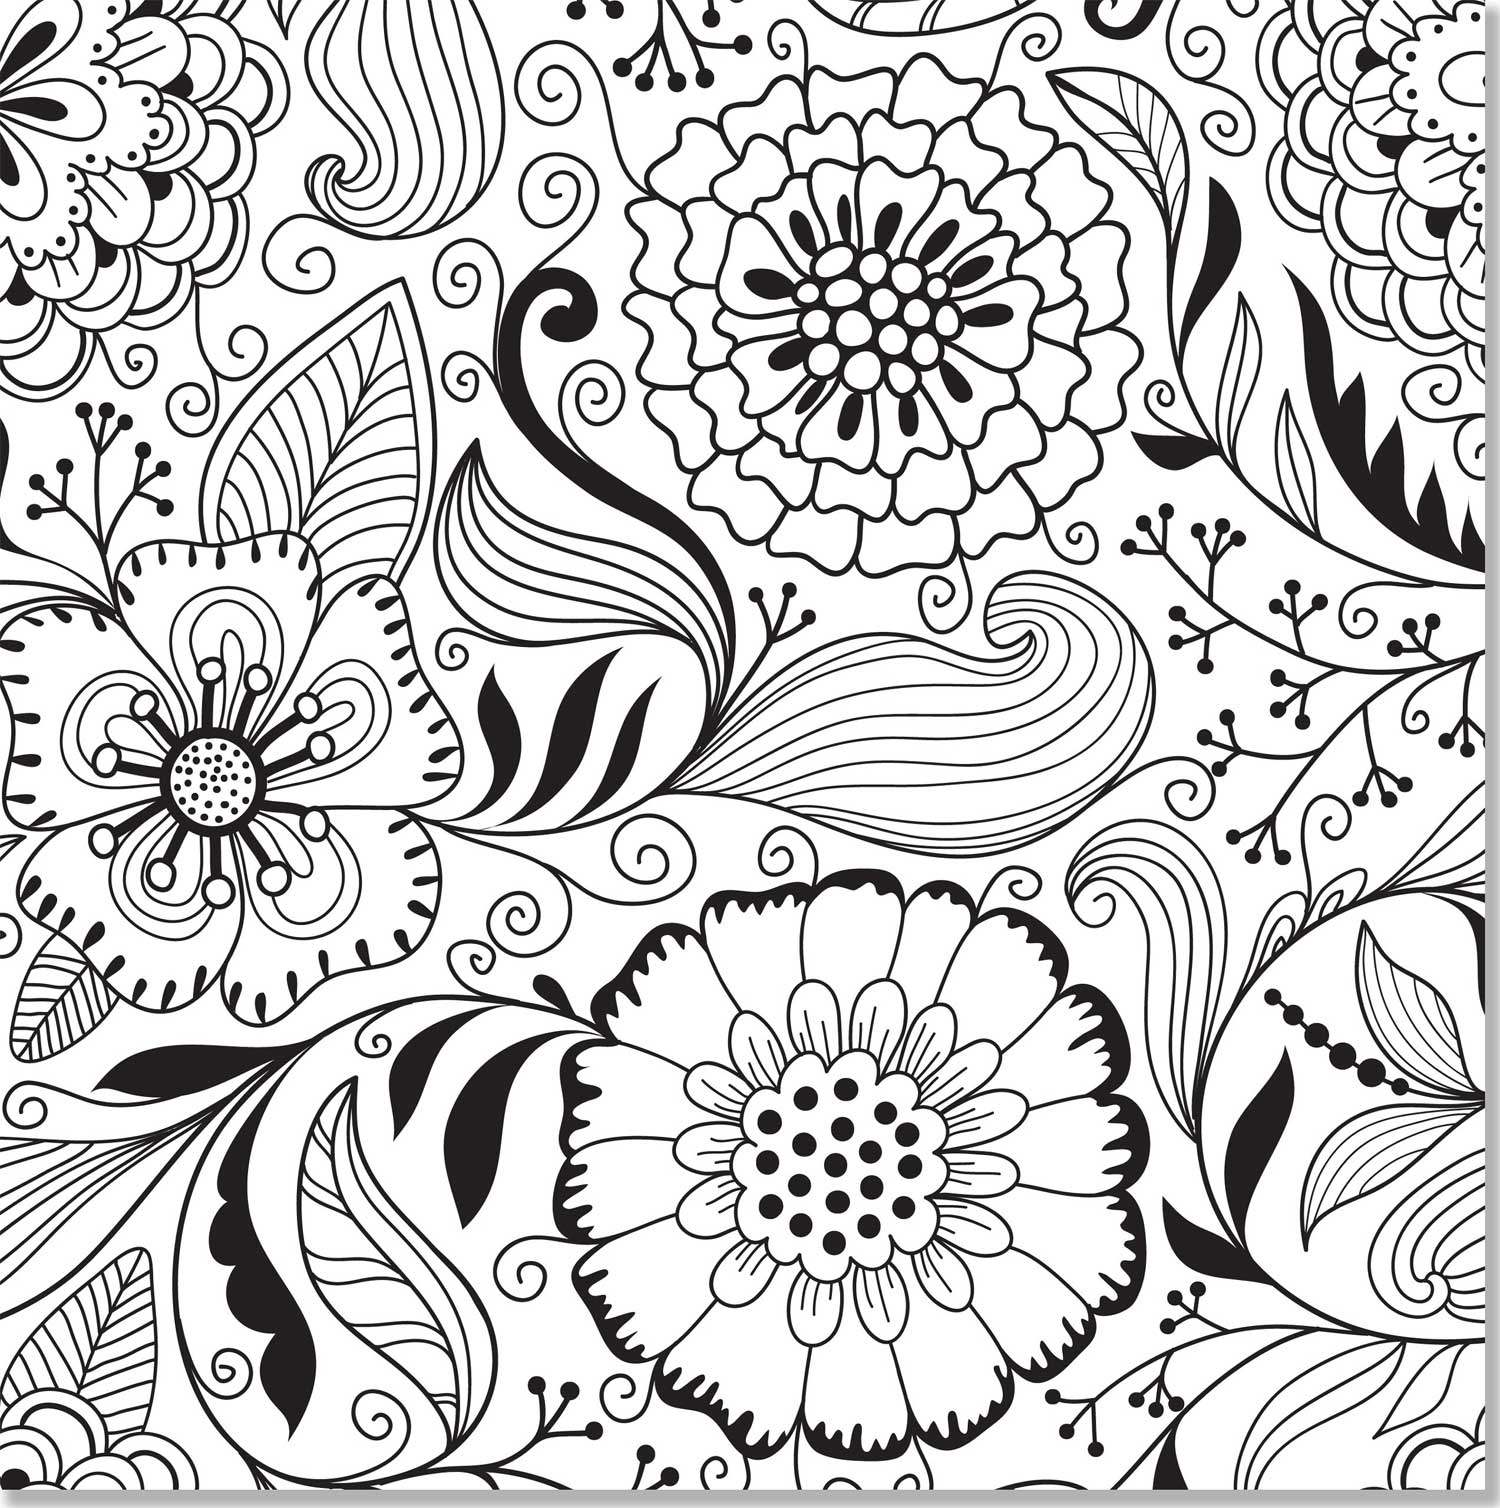 Coloring Pages Free Printable Coloring Page For Adults free printable coloring pages for adults only futpal com az pages